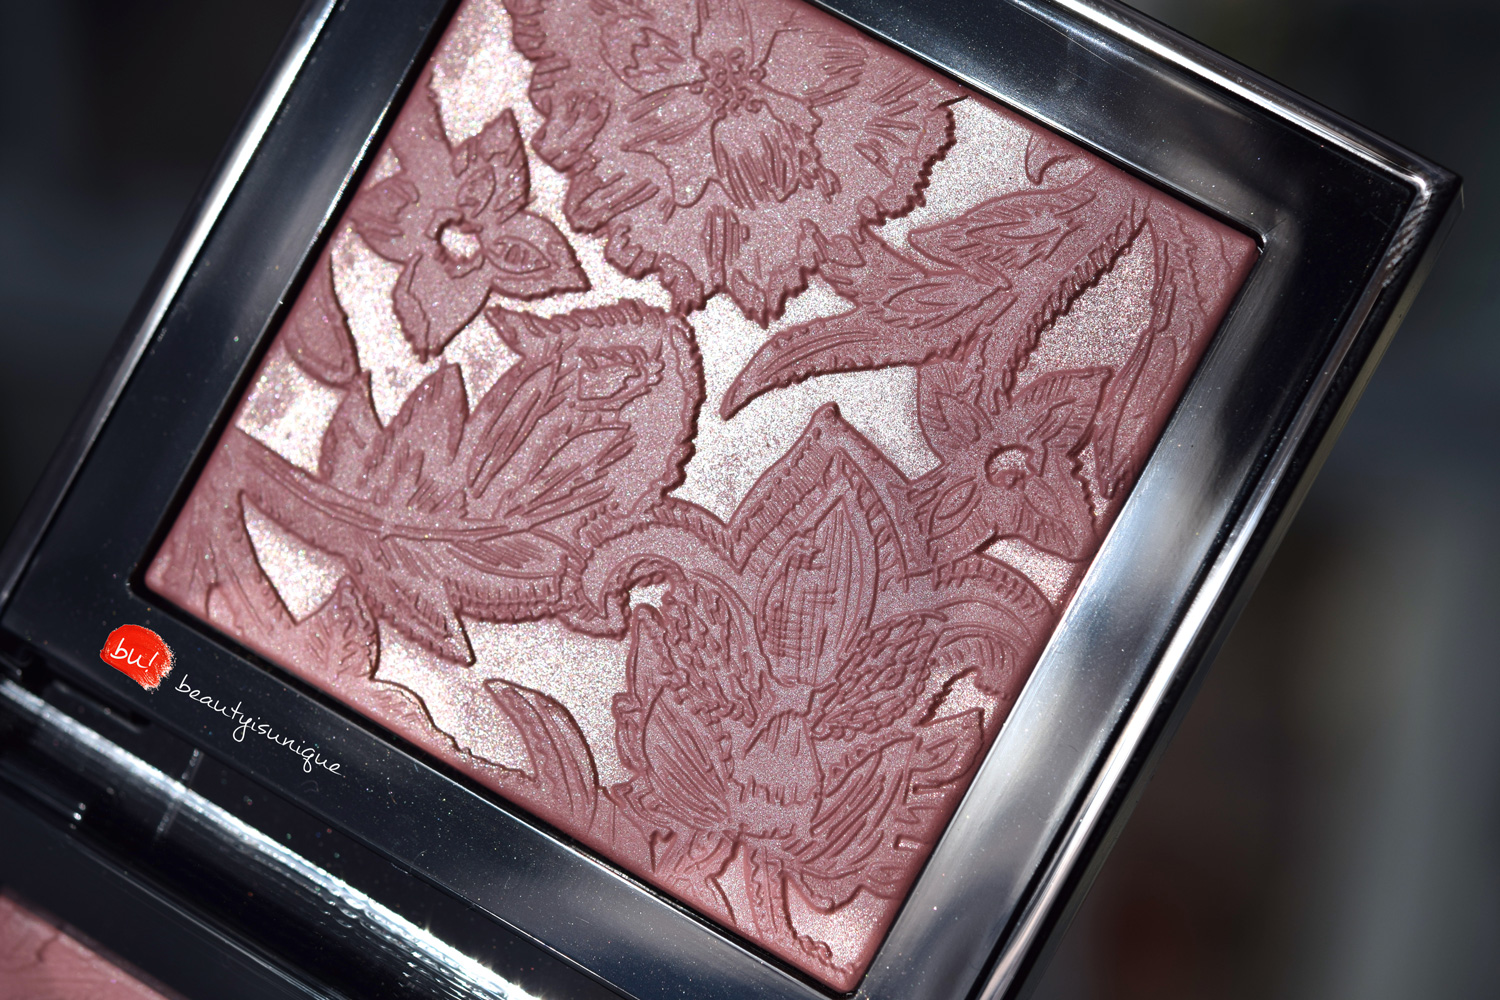 burberry-blush-palette-2017-limited-edition